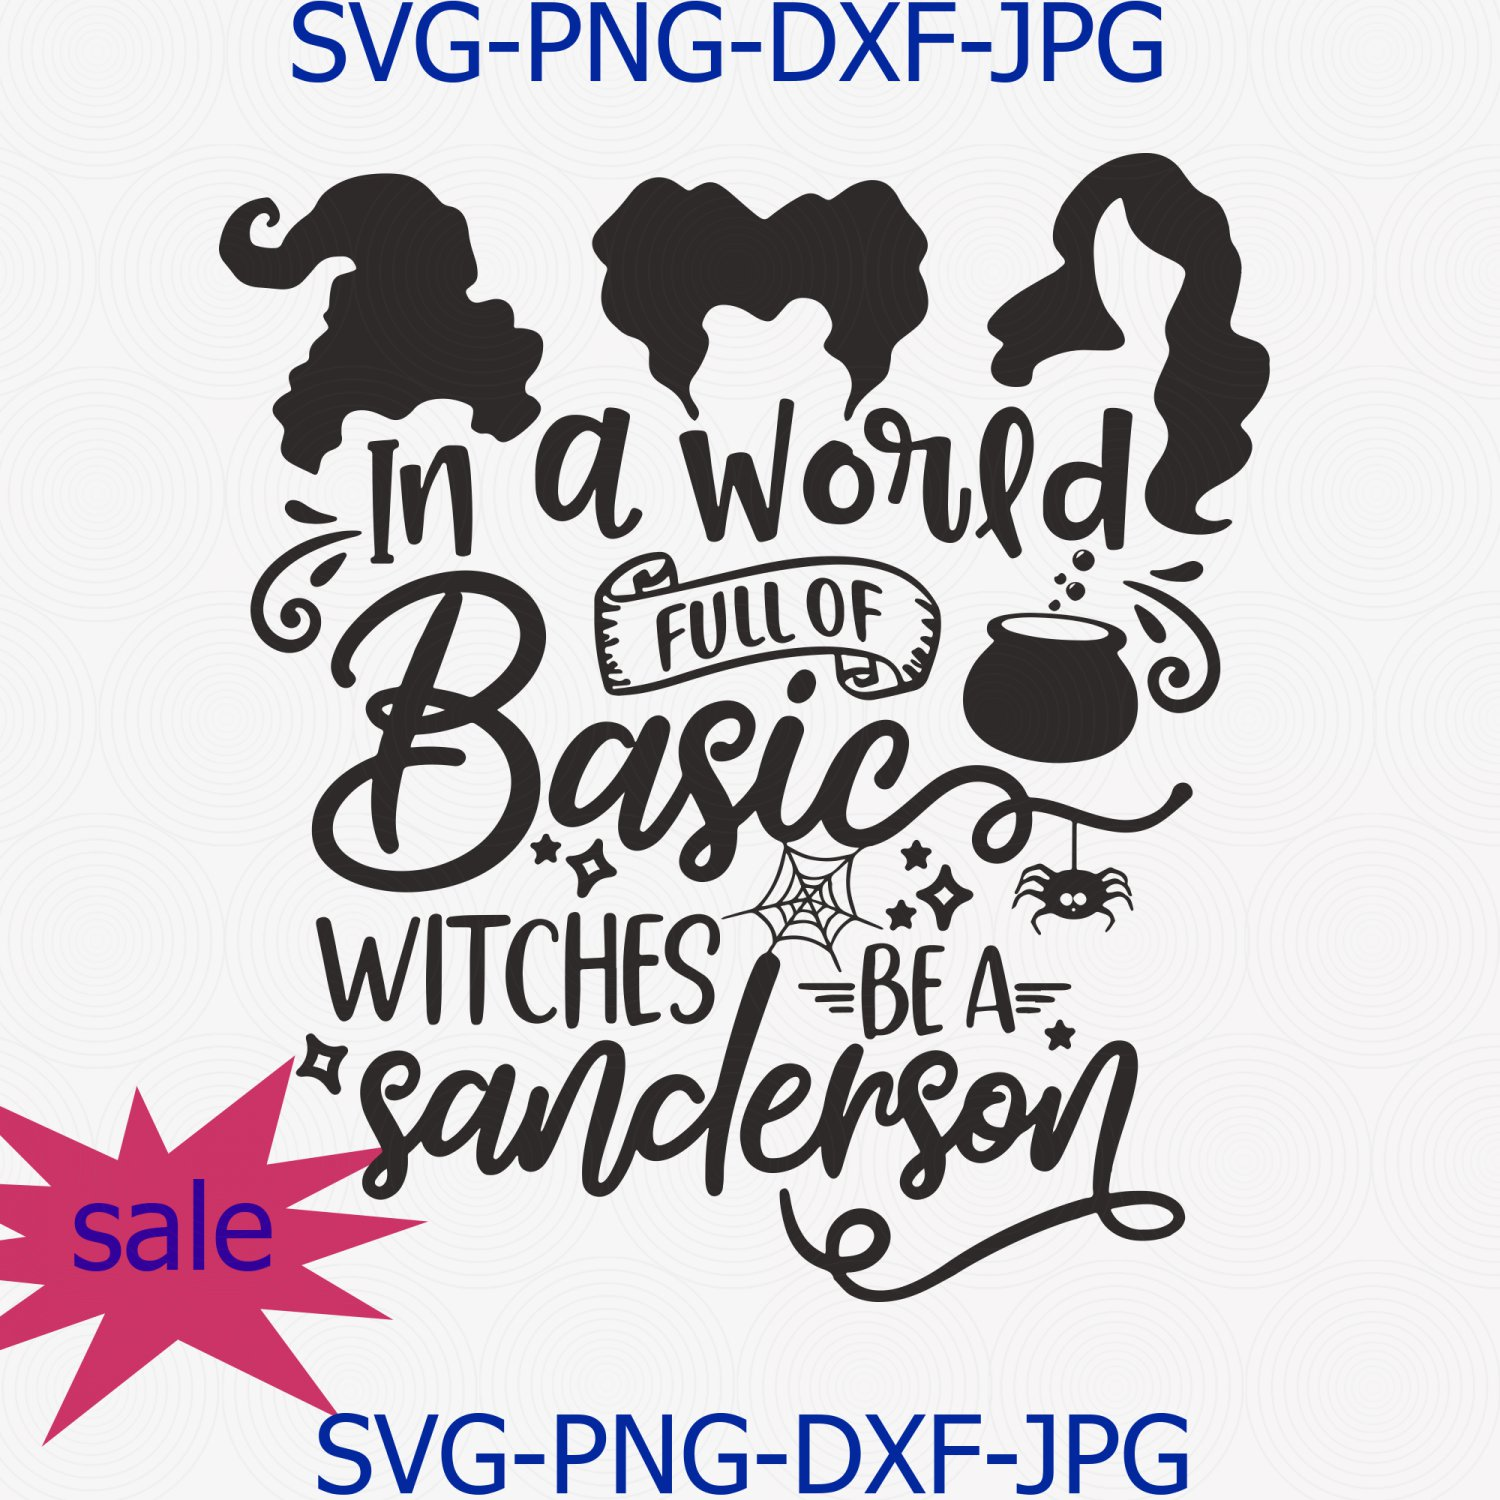 In A World Full Of Basic Witches Be A Sanderson Svg Png Cut File, Halloween Party Svg